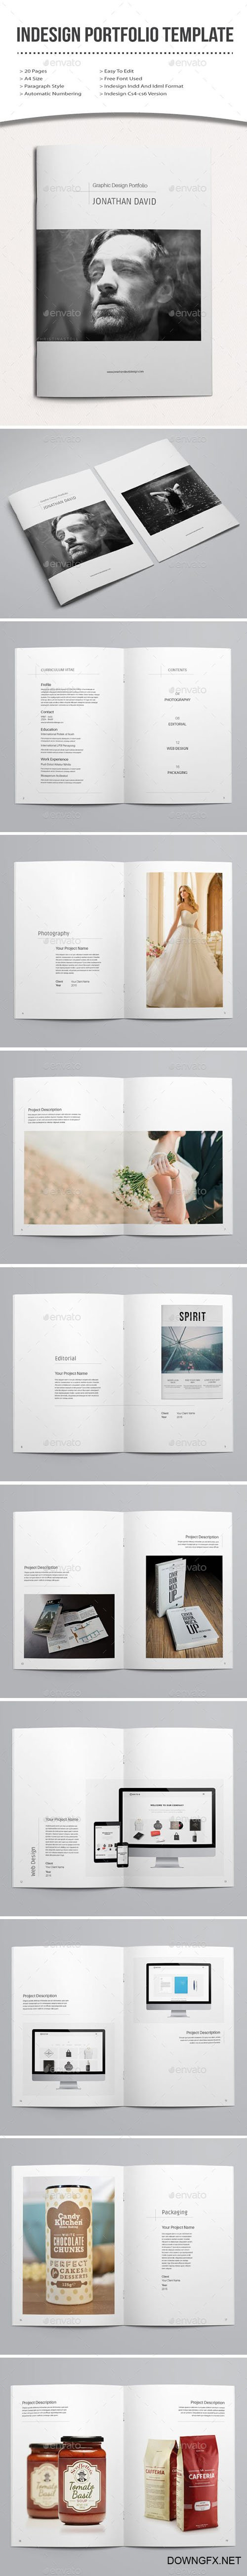 indesign portfolio template 12855629